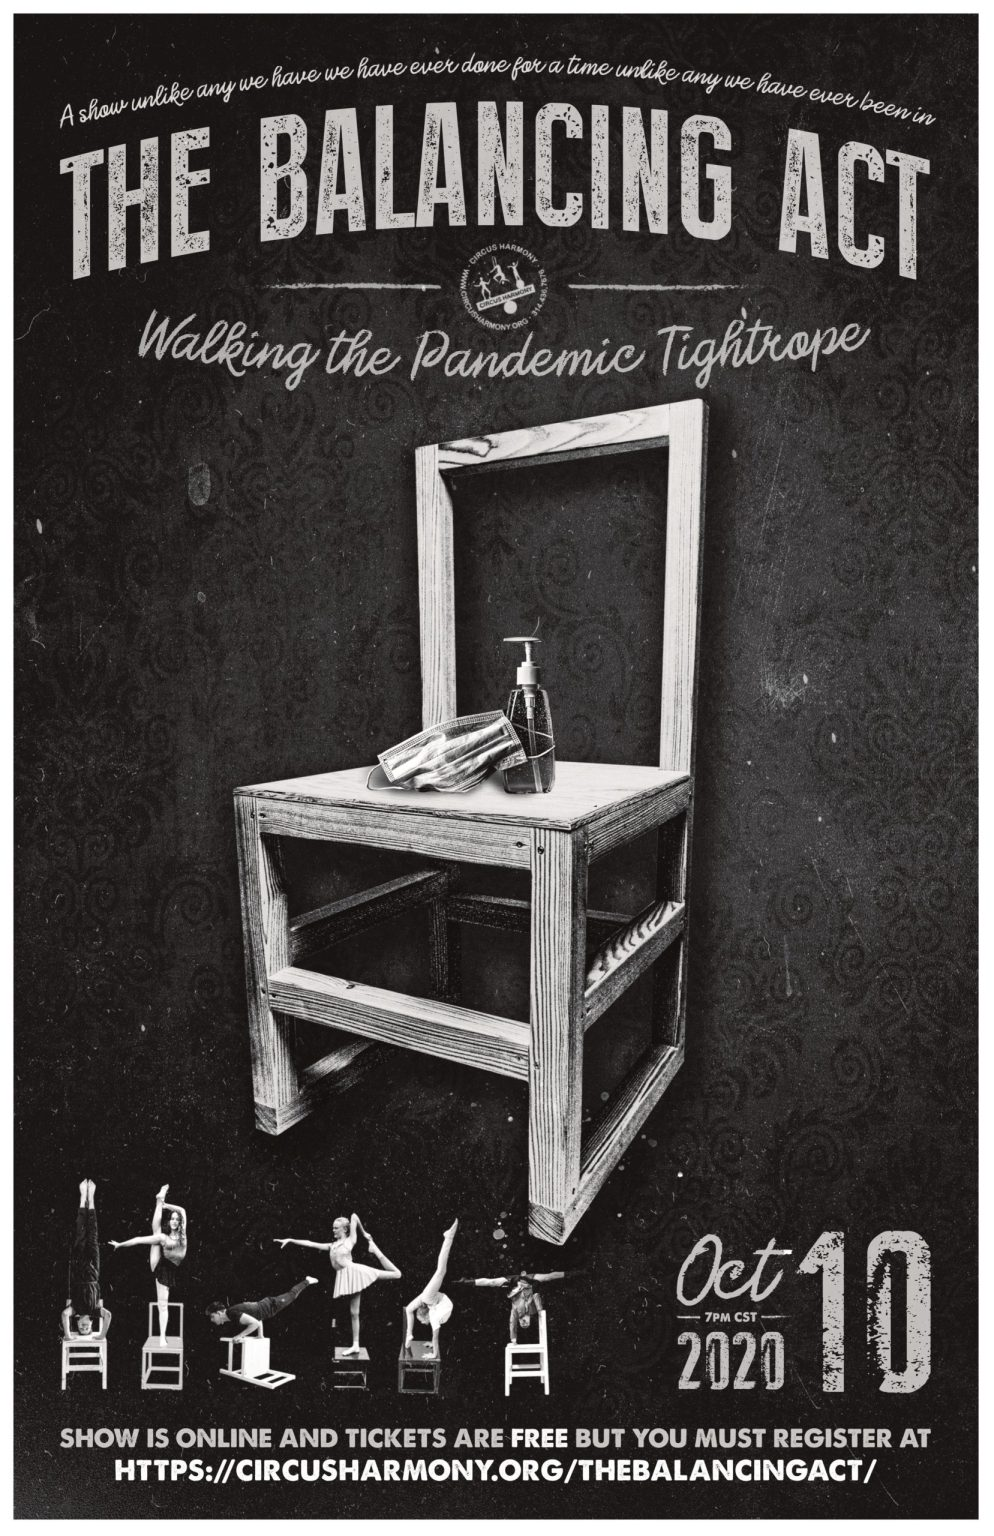 balancing act show poster of a chair with a mask and sanitizer on it